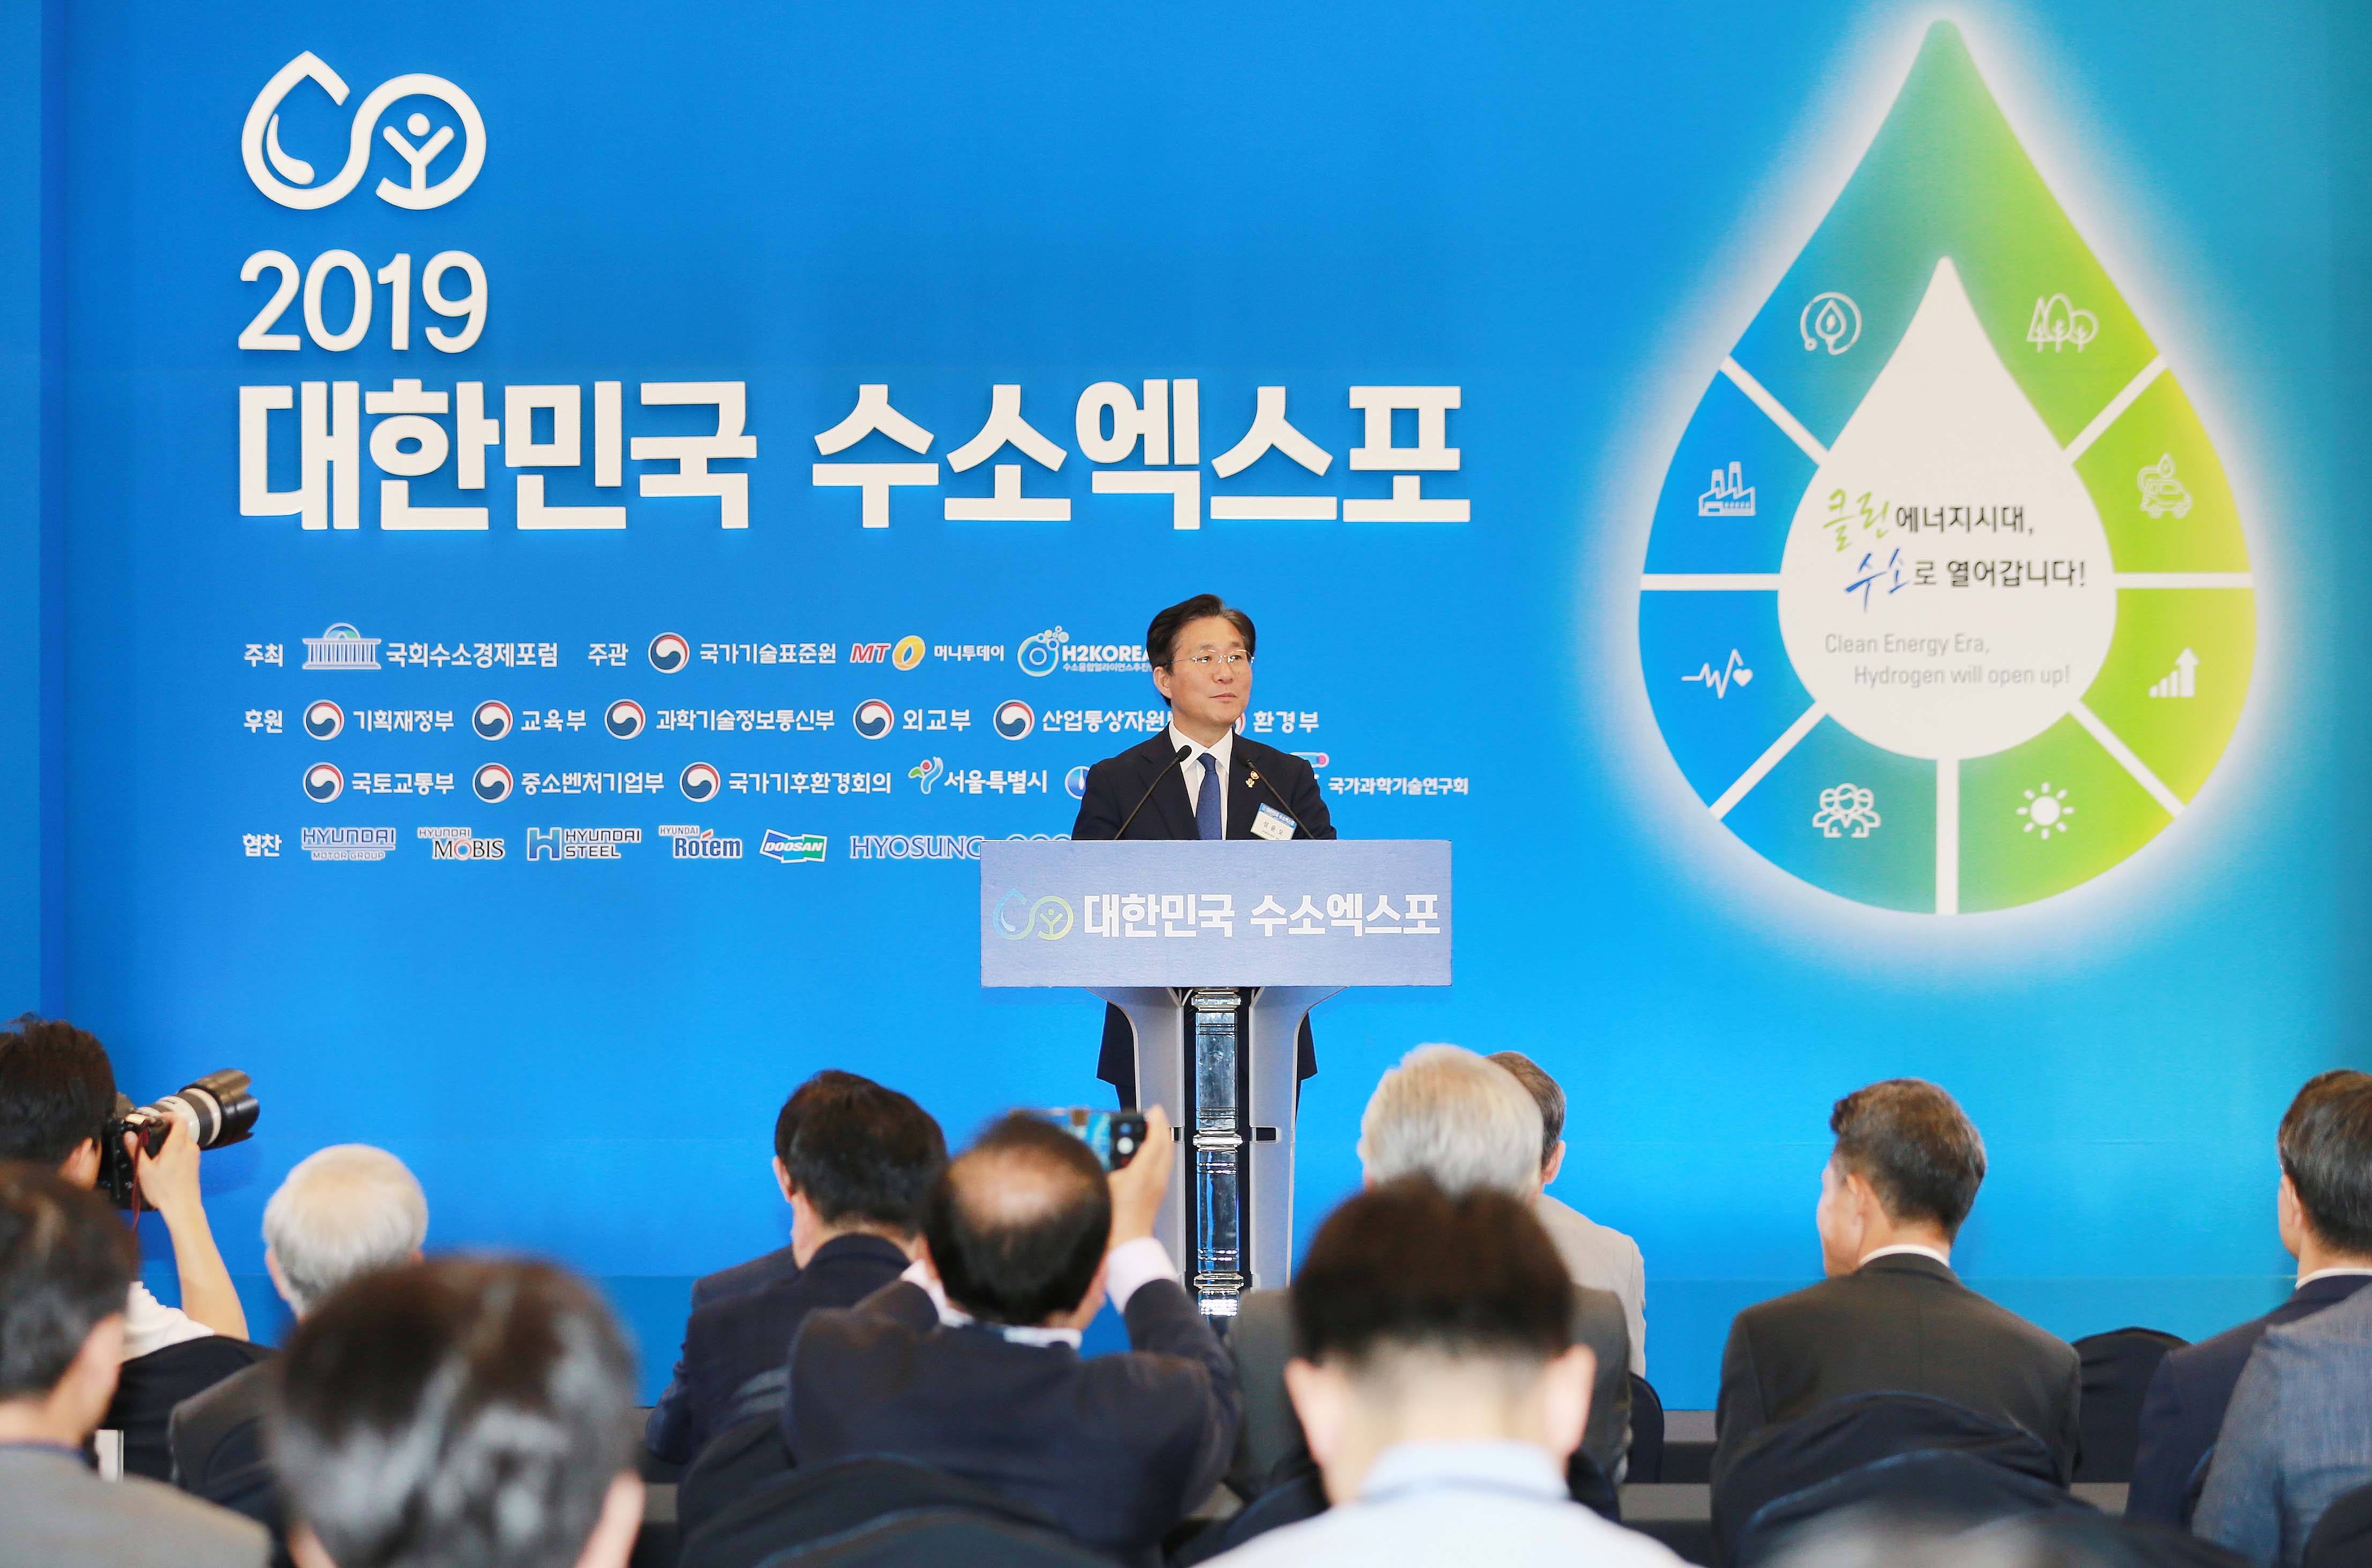 2019 Korea Hydrogen Expo takes place in Seoul